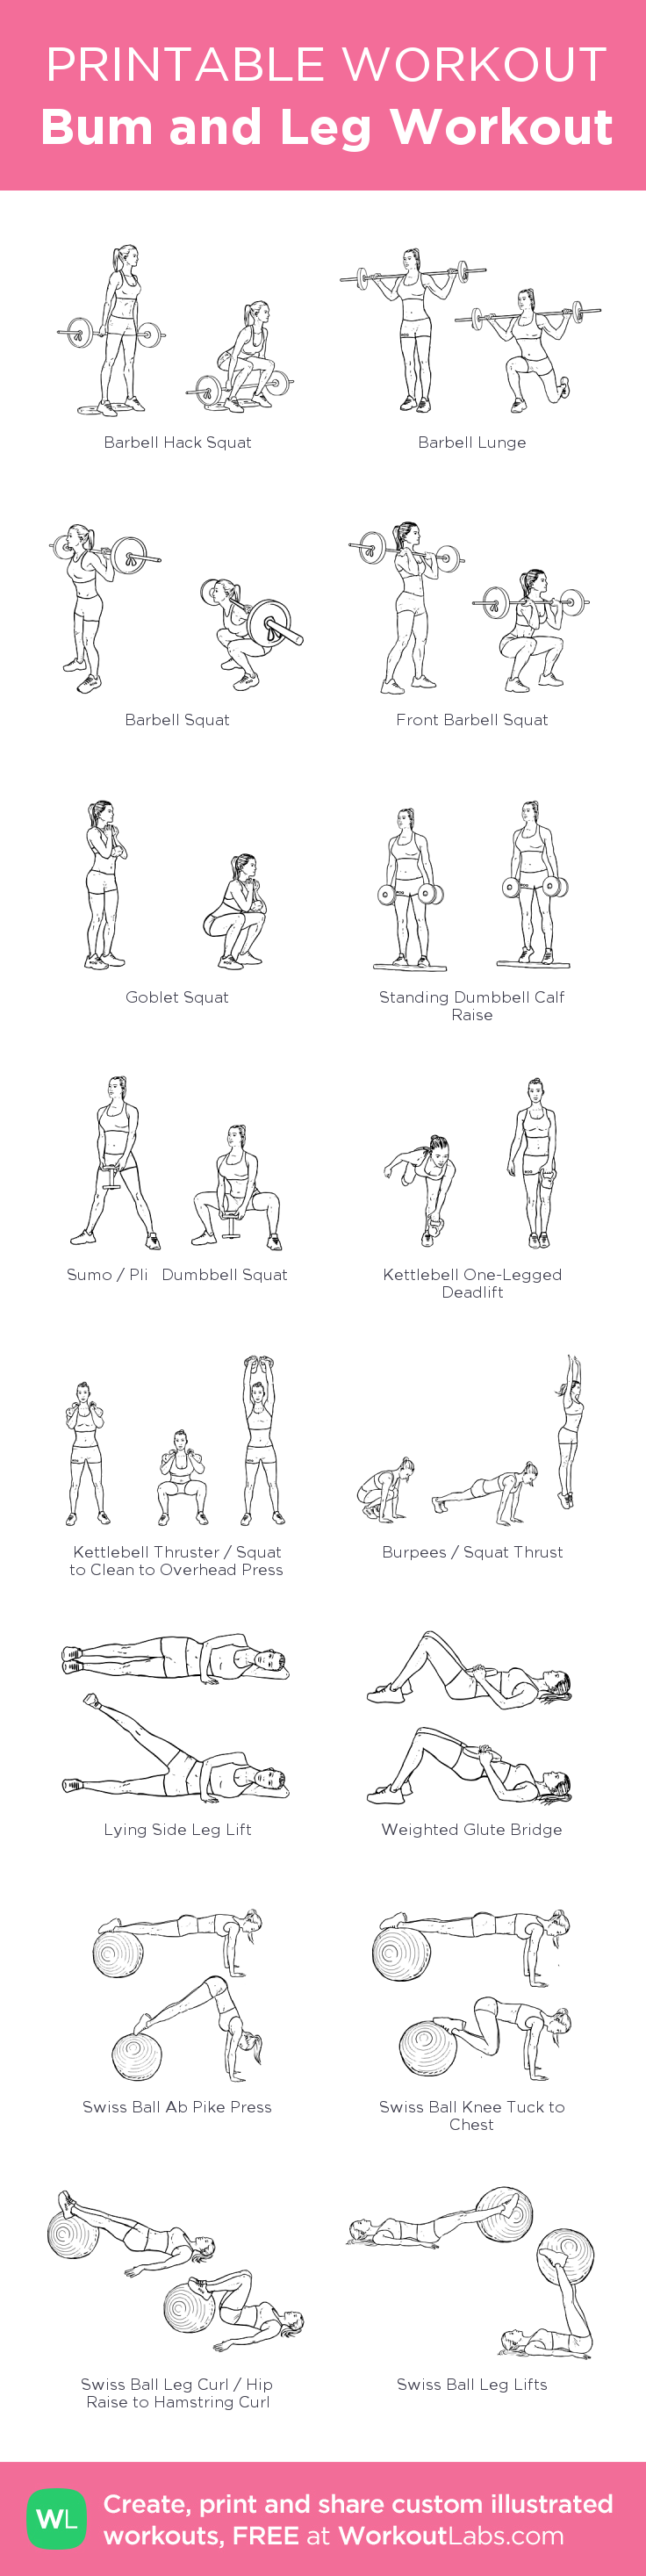 Bum and Leg Workout :my visual workout created at WorkoutLabs.com • Click through to customize and download as a FREE PDF! #customworkout